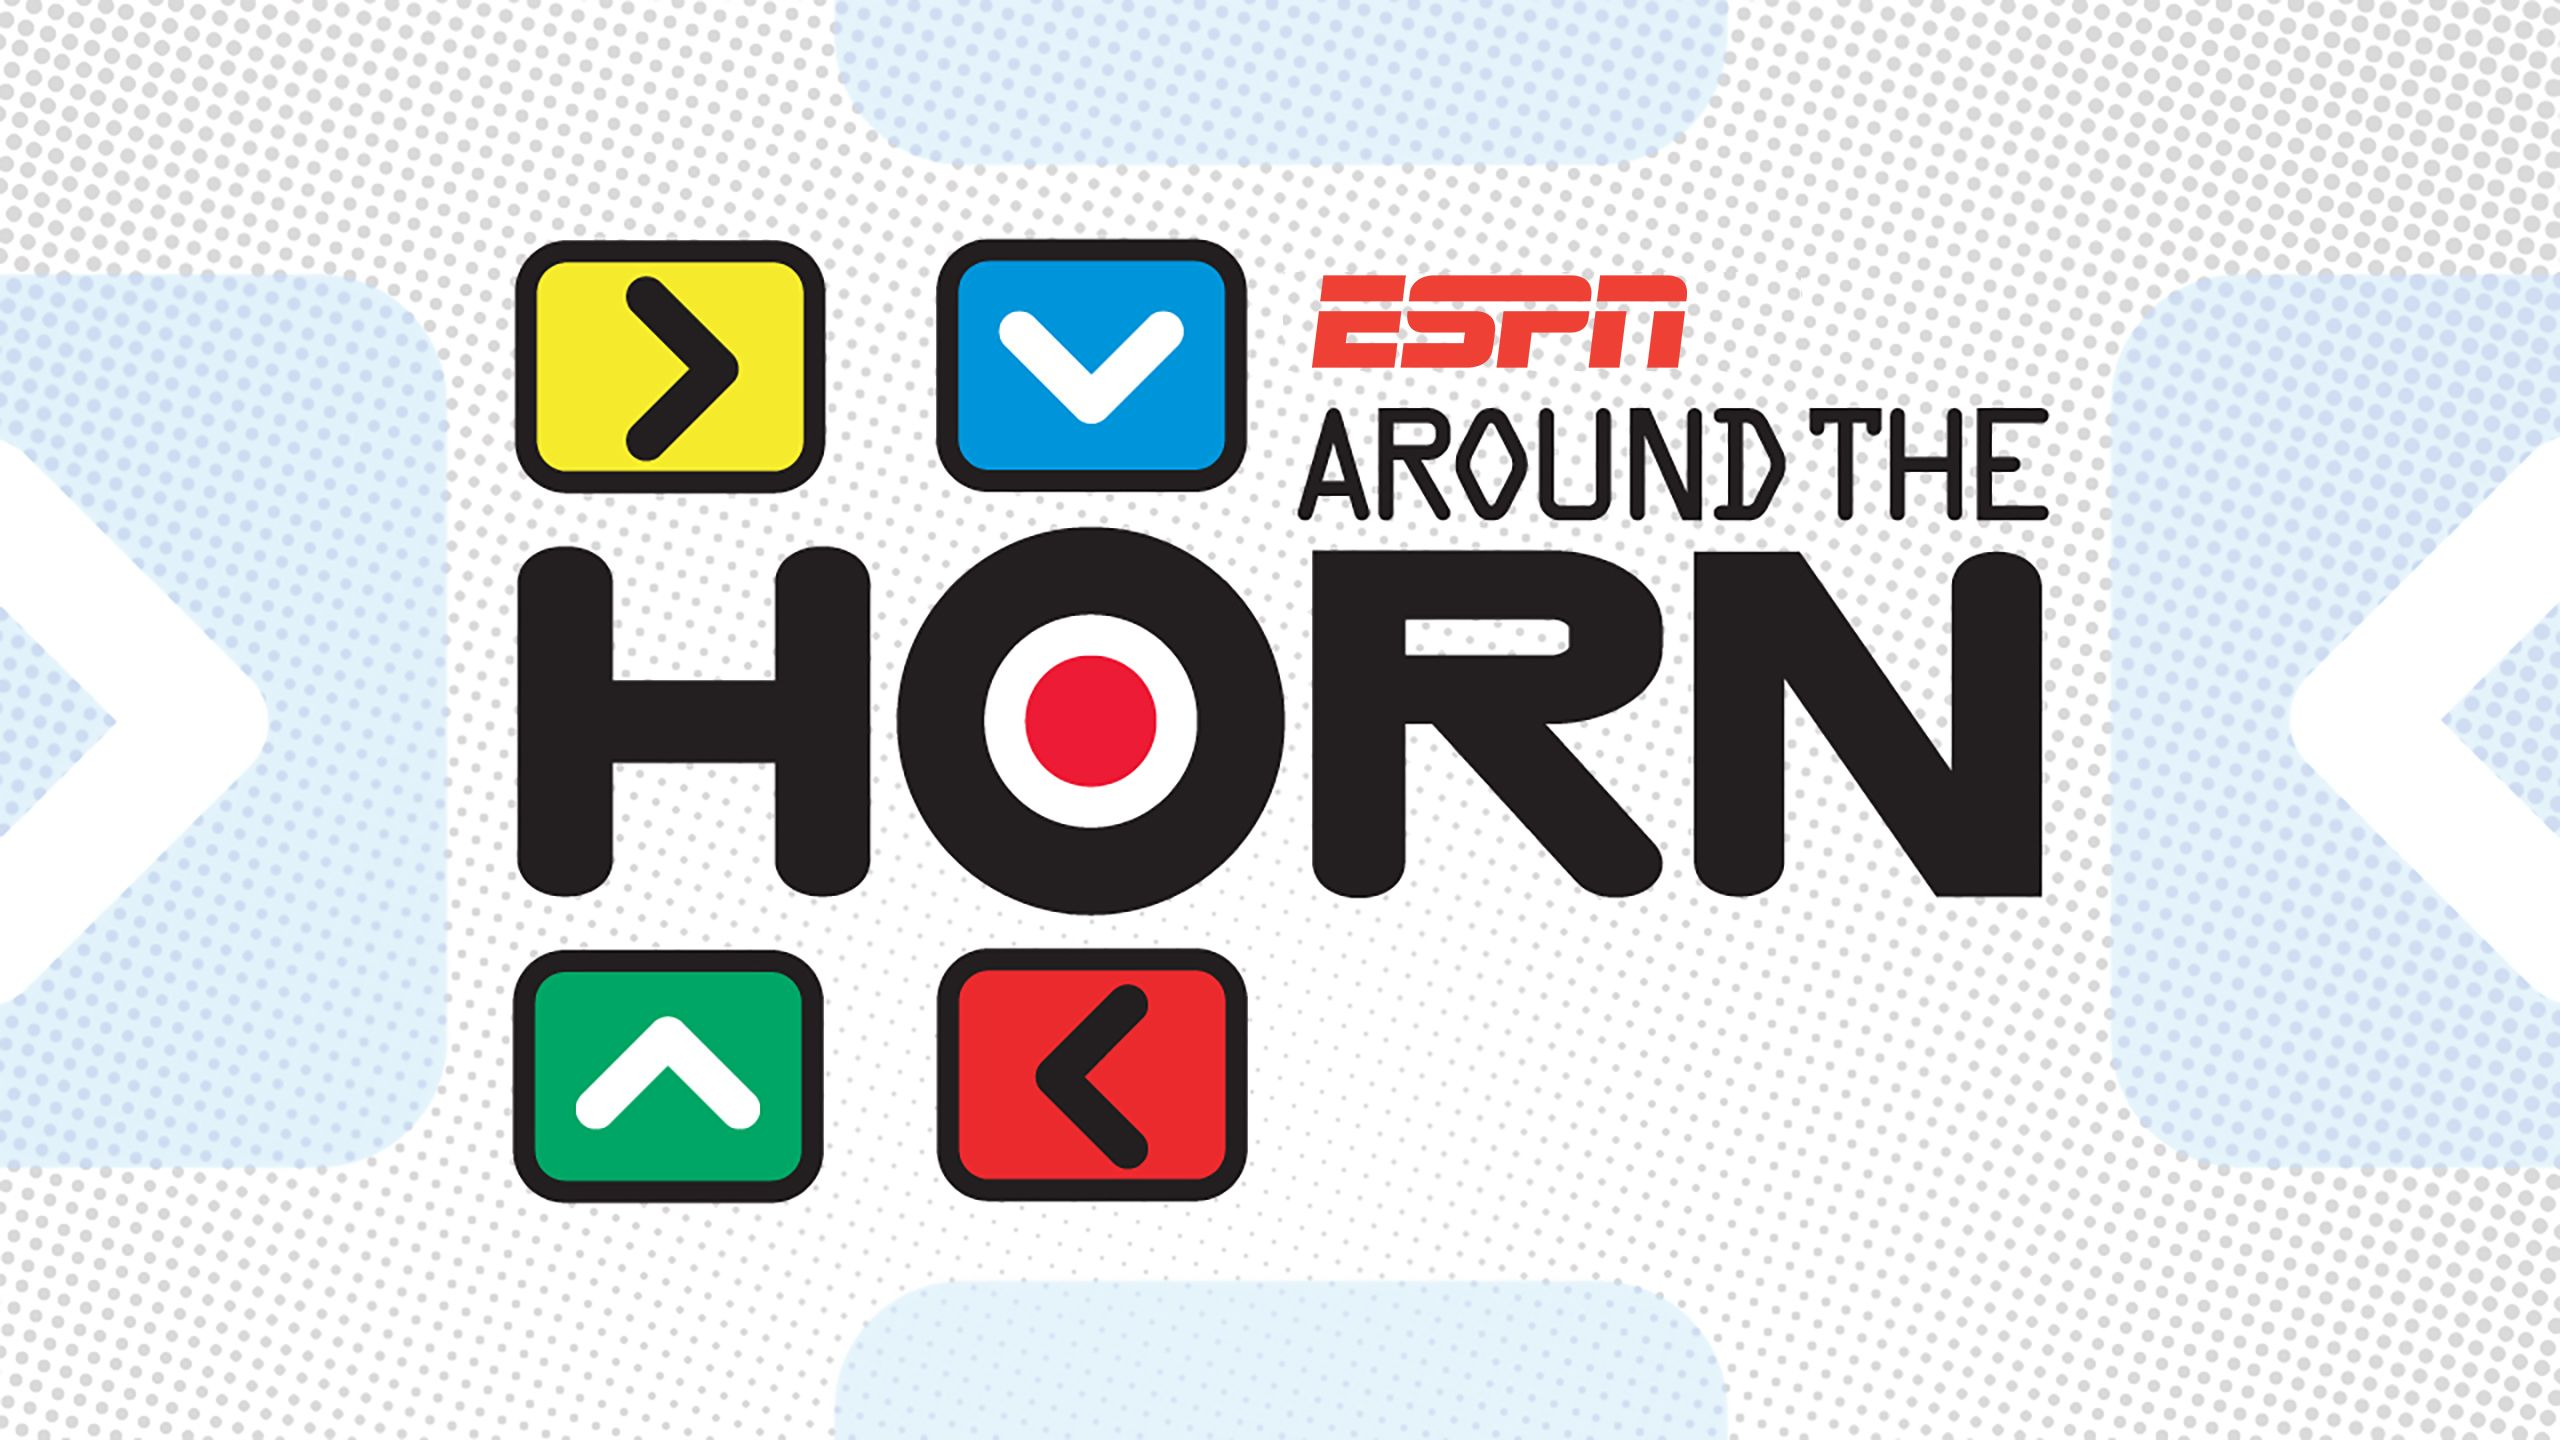 Mon, 11/20 - Around The Horn